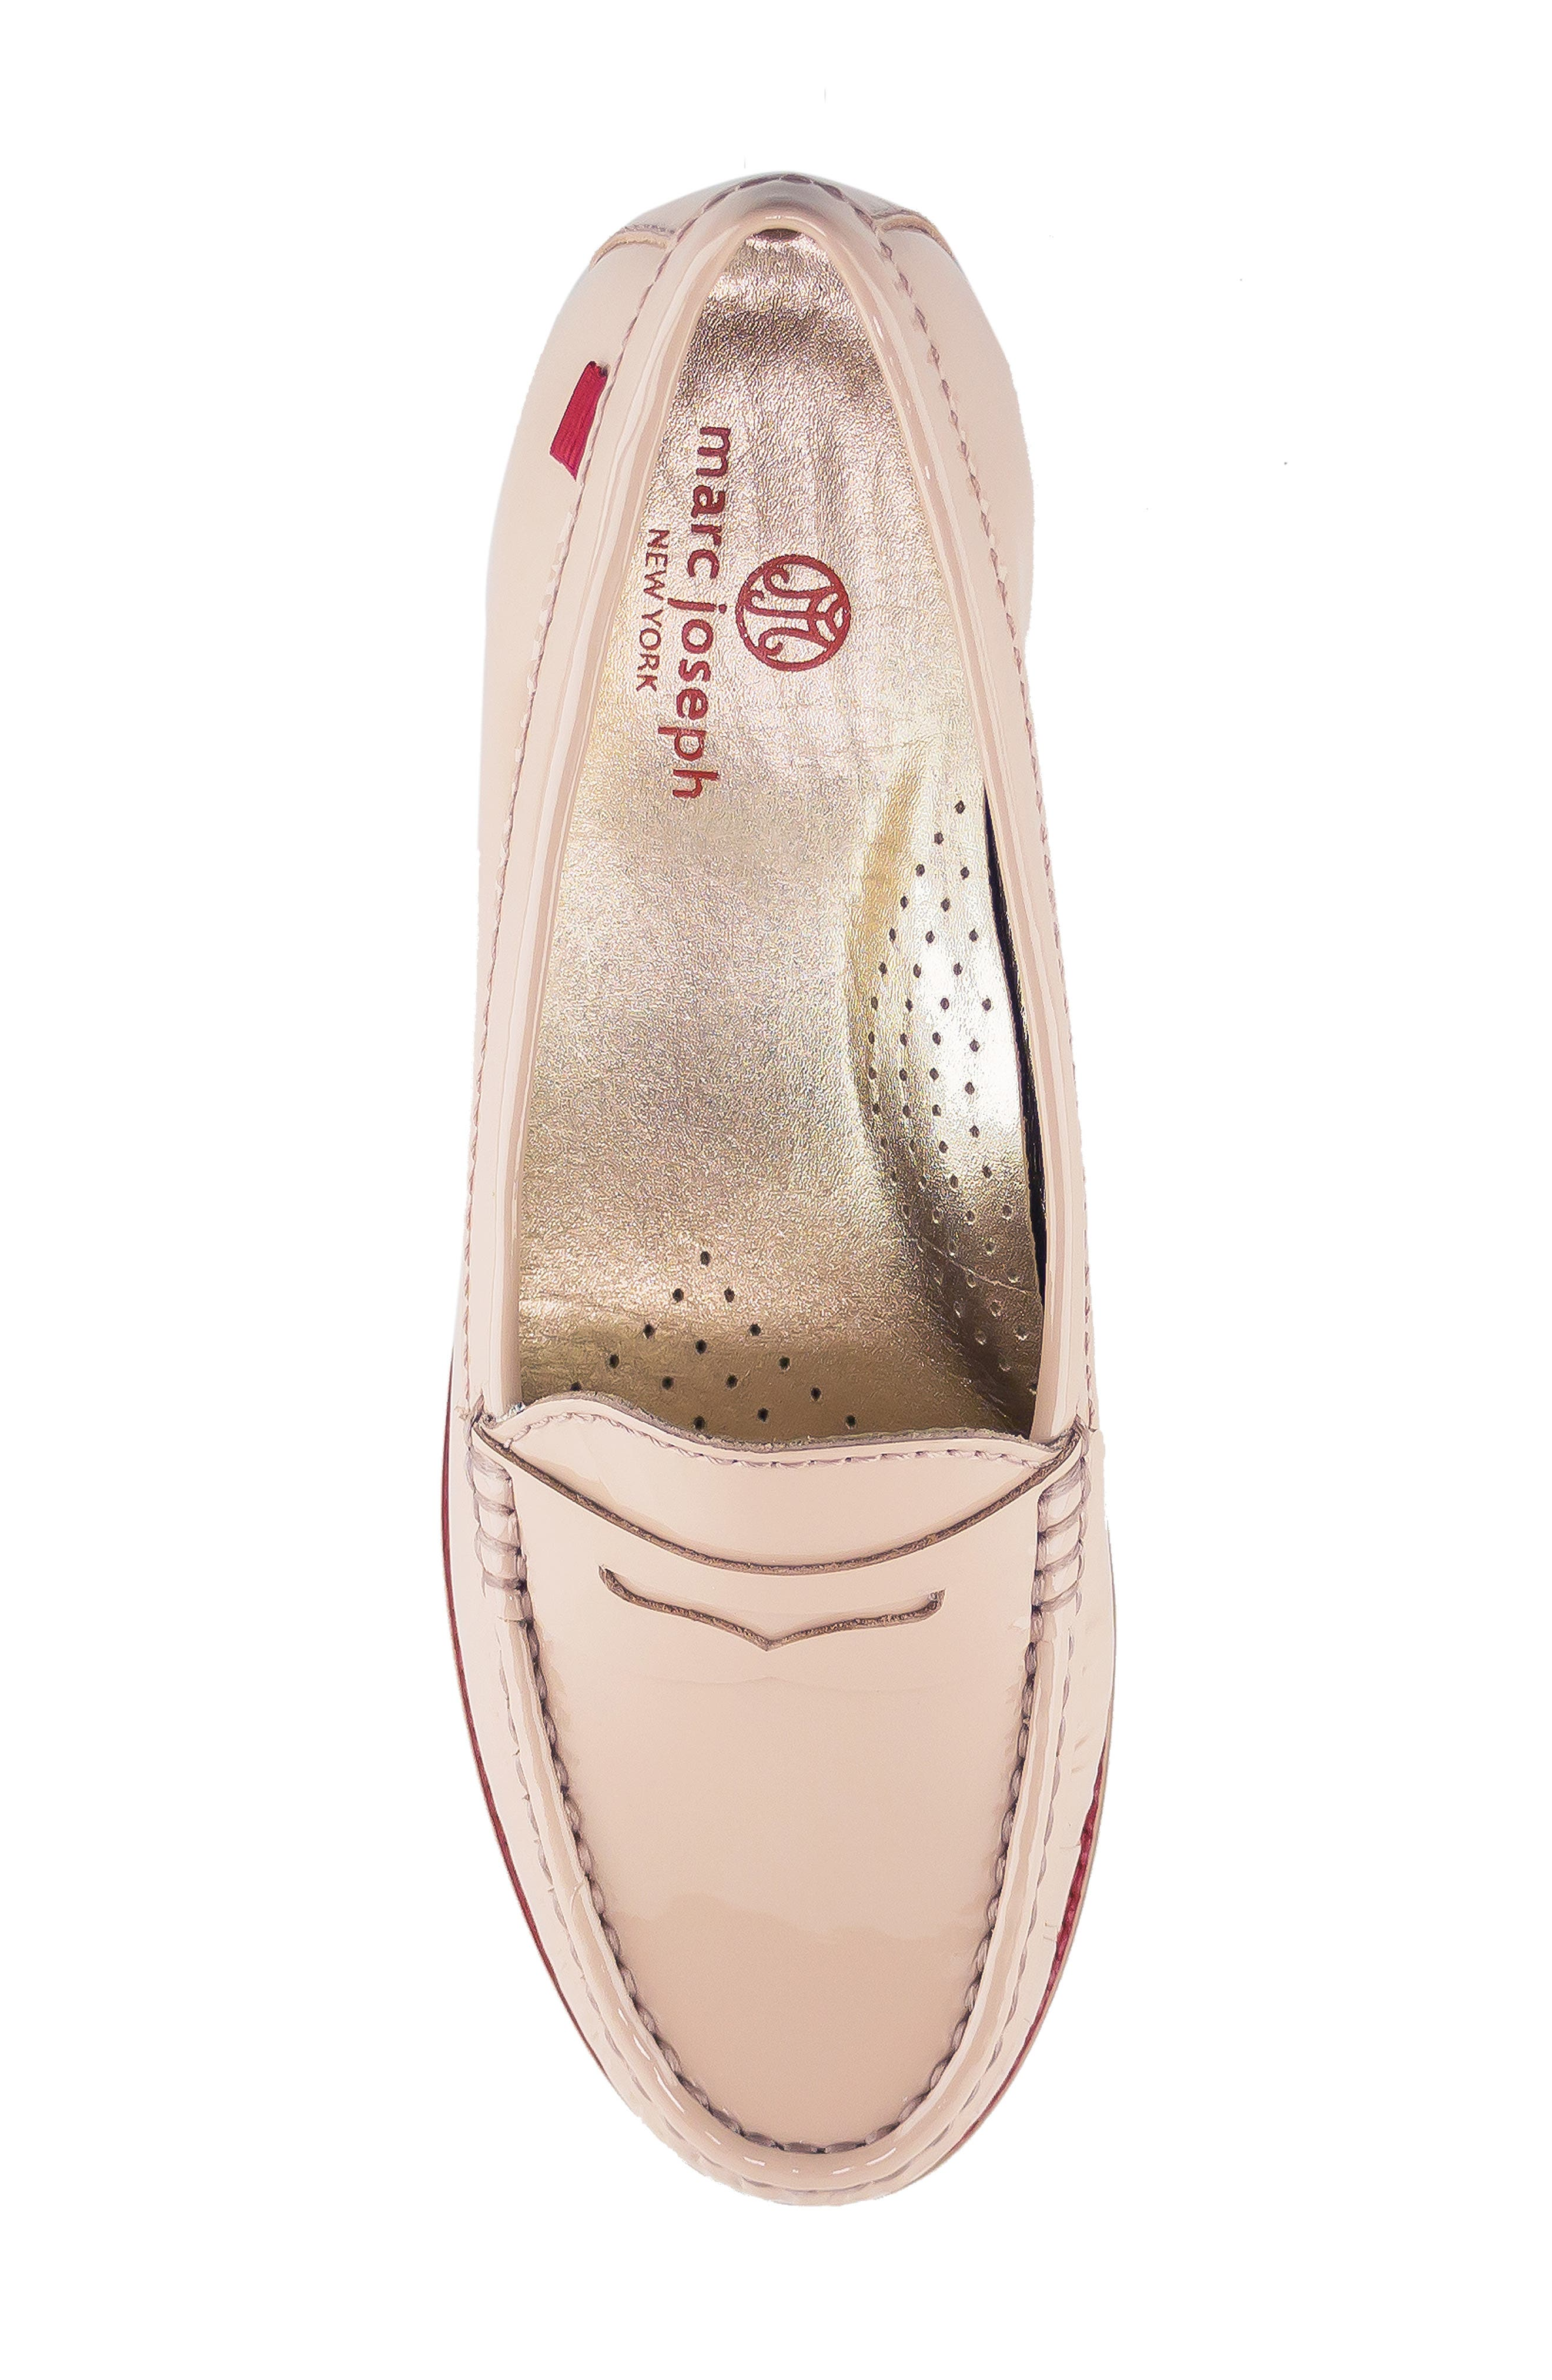 East Village Loafer,                             Alternate thumbnail 4, color,                             NUDE PATENT